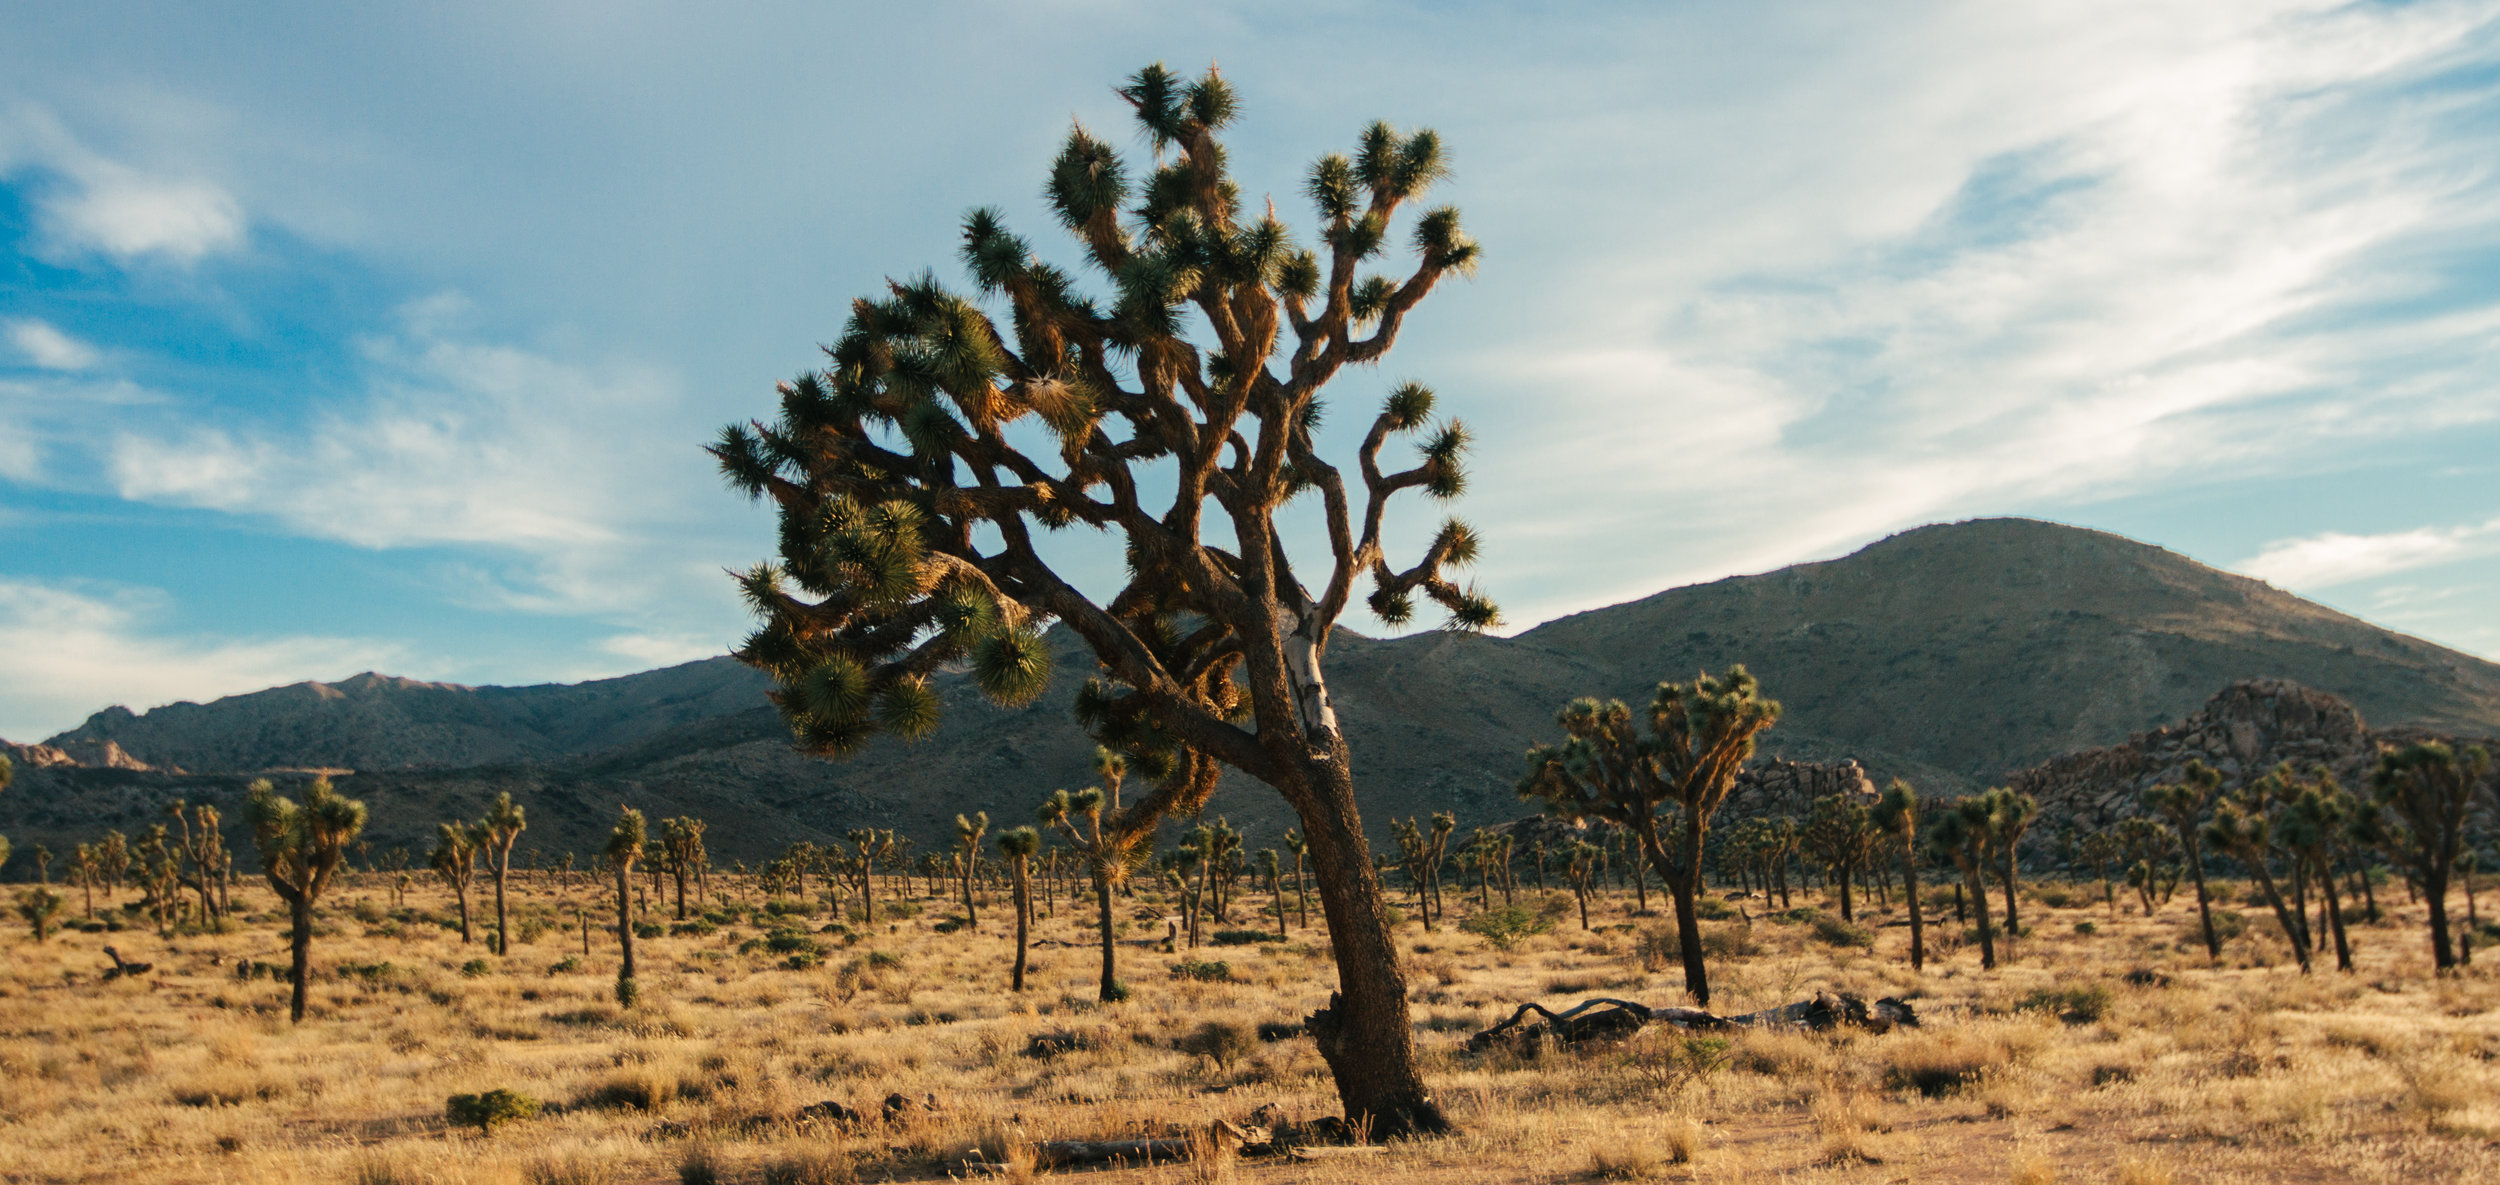 Joshua tree 2 (3 of 3).jpg